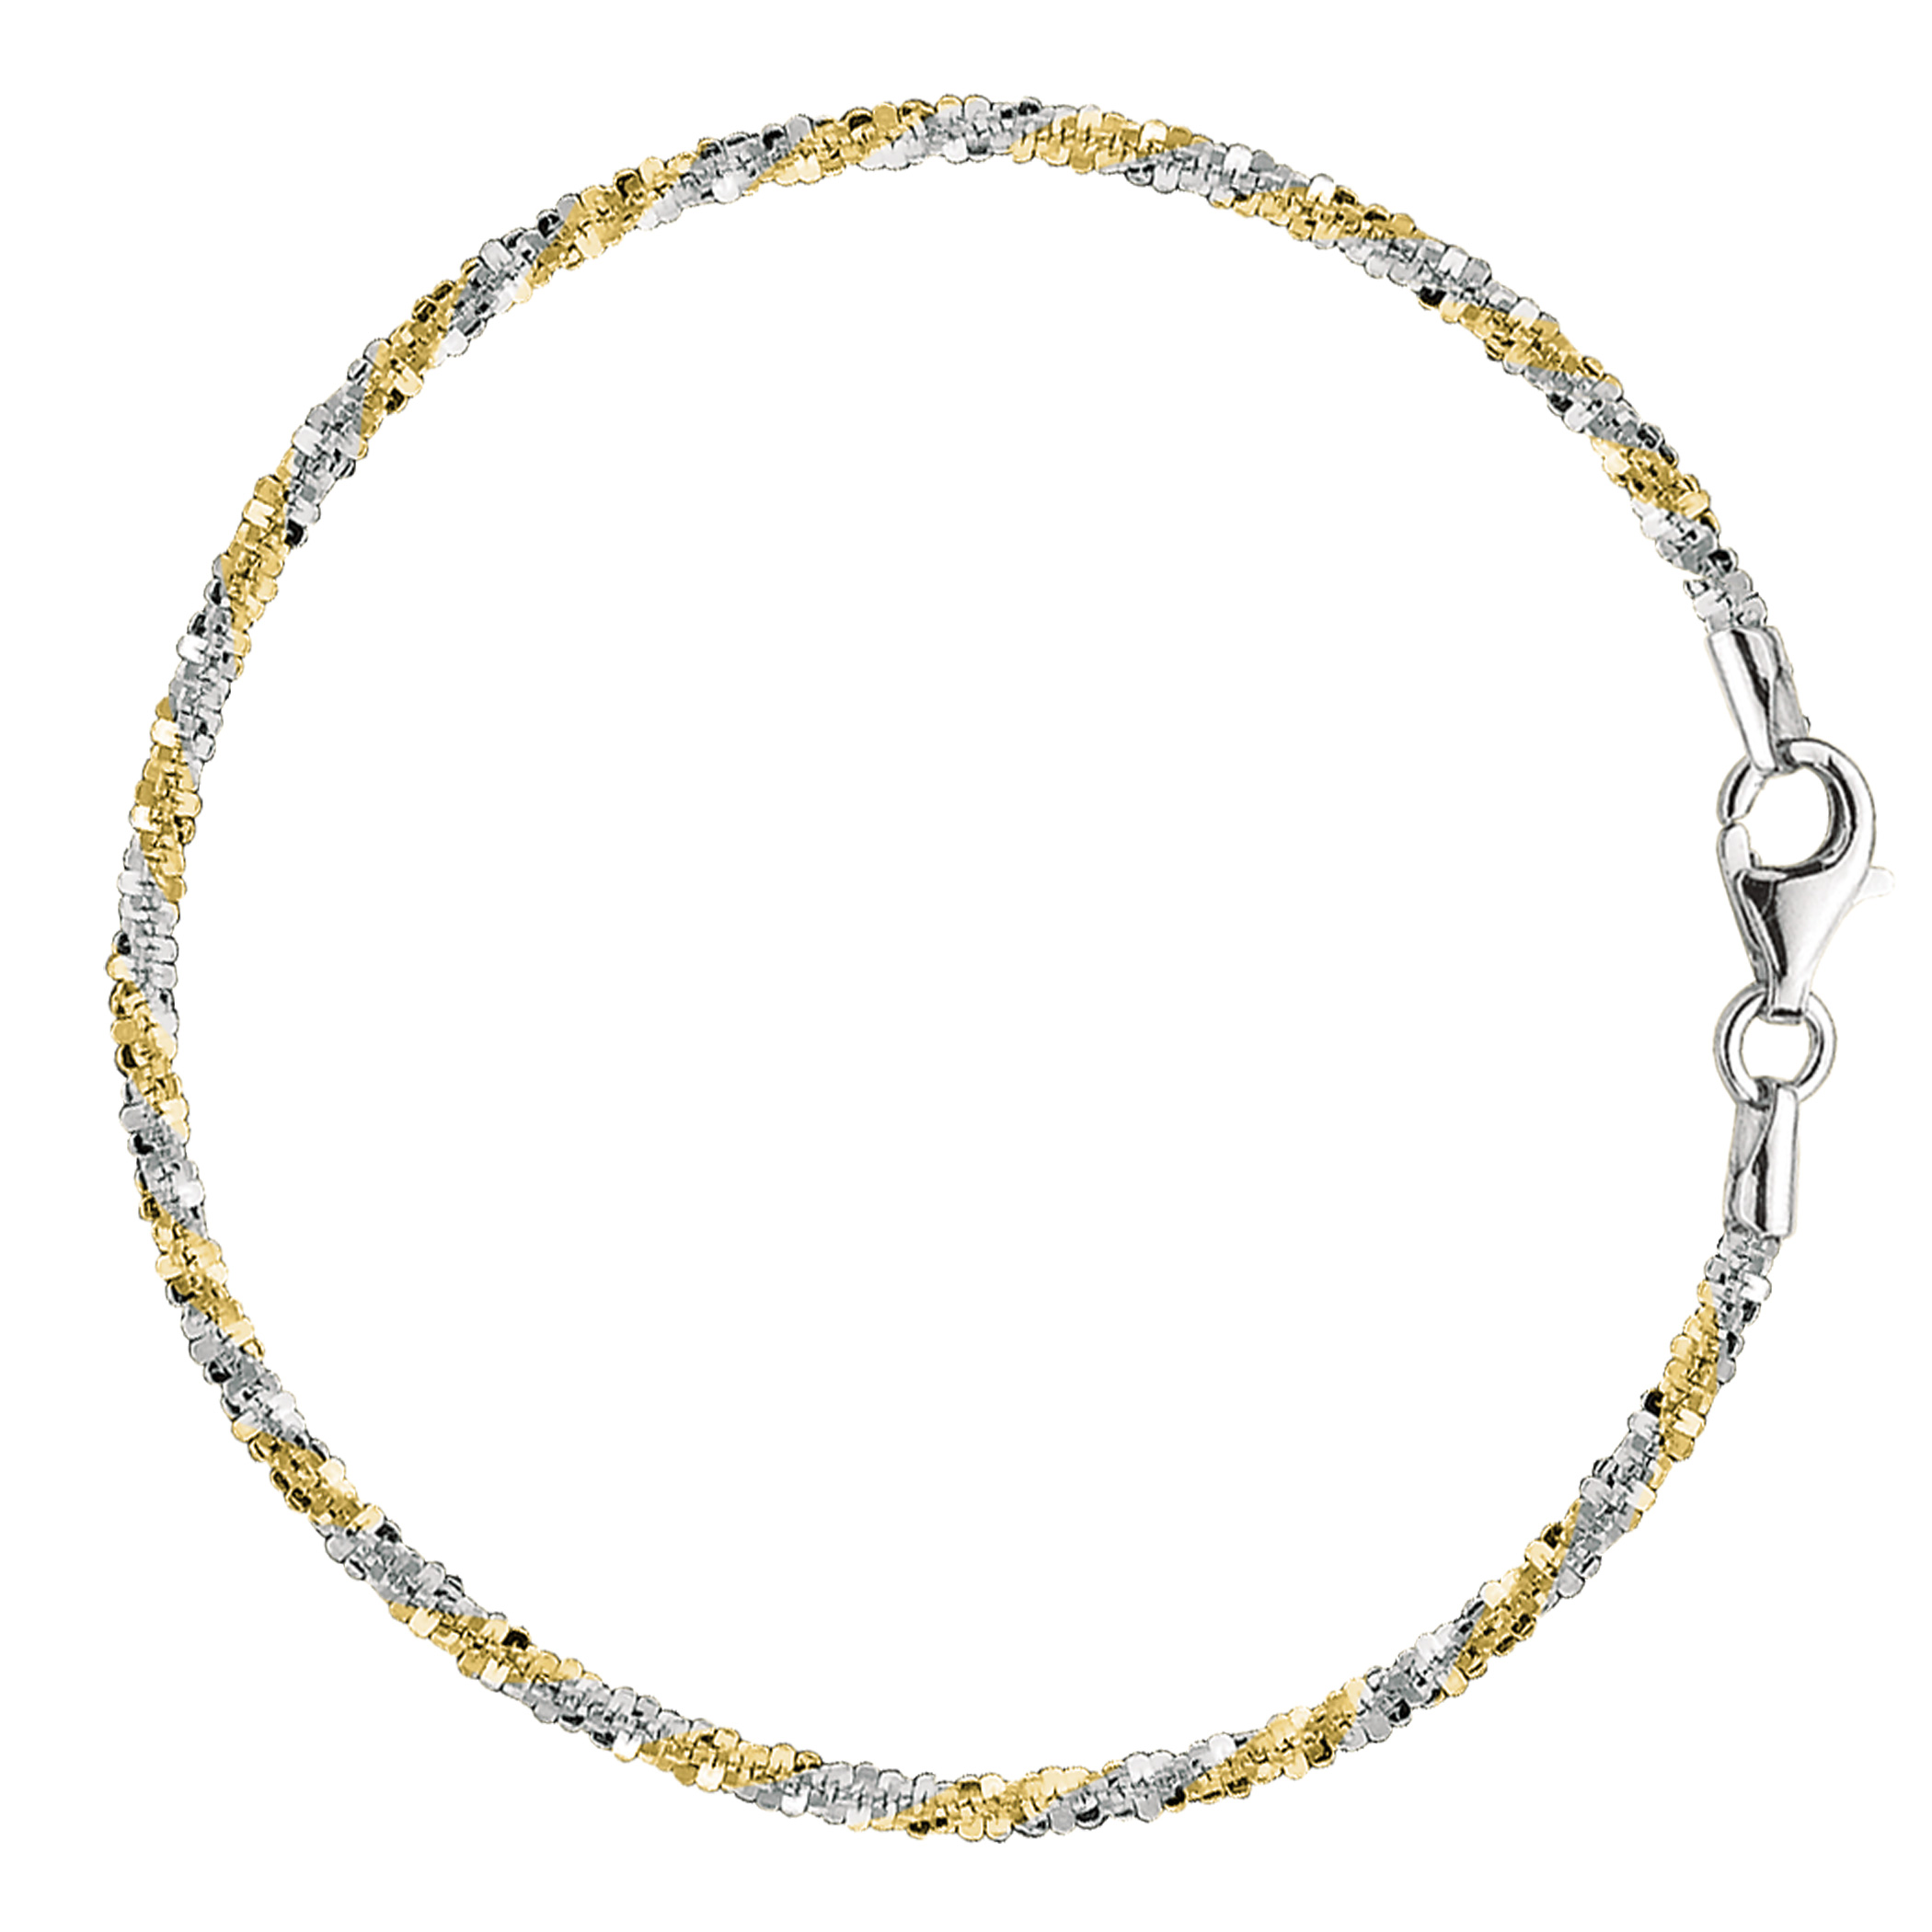 White And Yellow Sparkle Style Chain Anklet In Sterling Silver, 9″